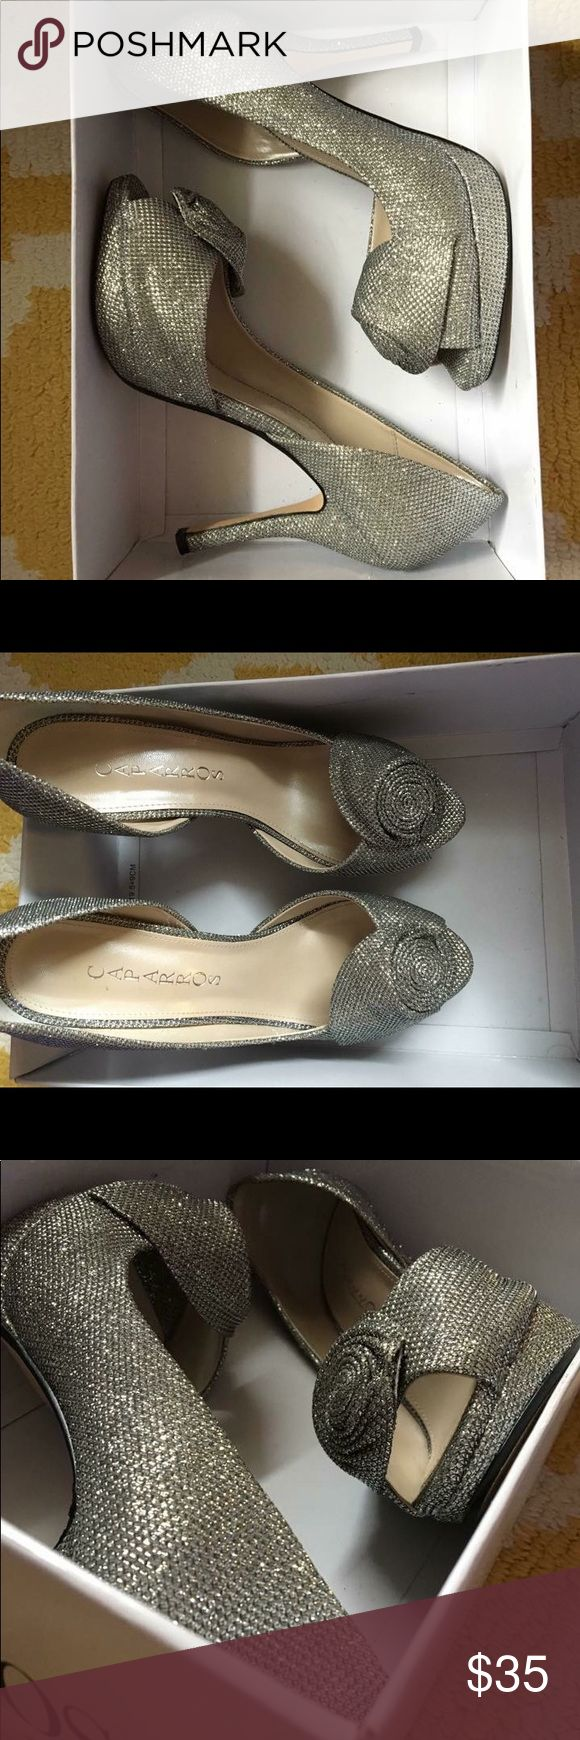 Sparkly Heels (NWT) Open toed sparkly heels with a rose formation. Never worn. 3-3.5 inch heel Caparros Shoes Heels